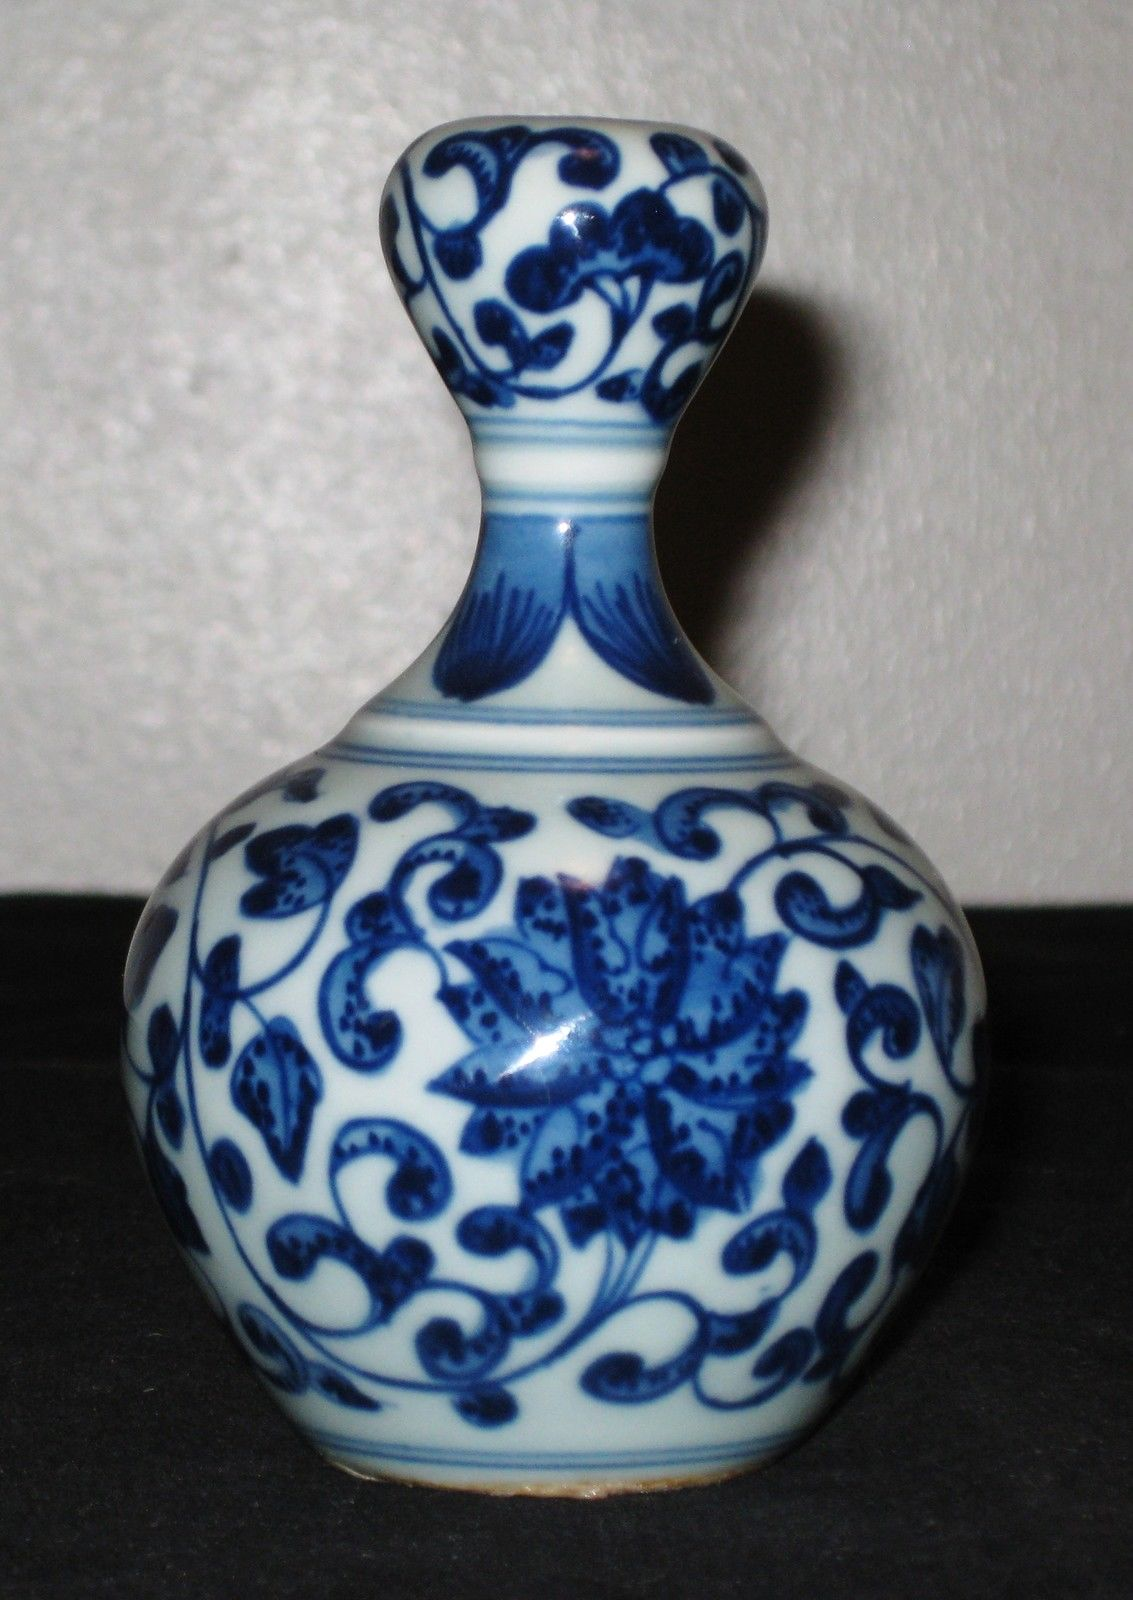 ANTIQUE CHINESE BLUE & WHITE PORCELAIN VASES, 19 TH CENTURY.